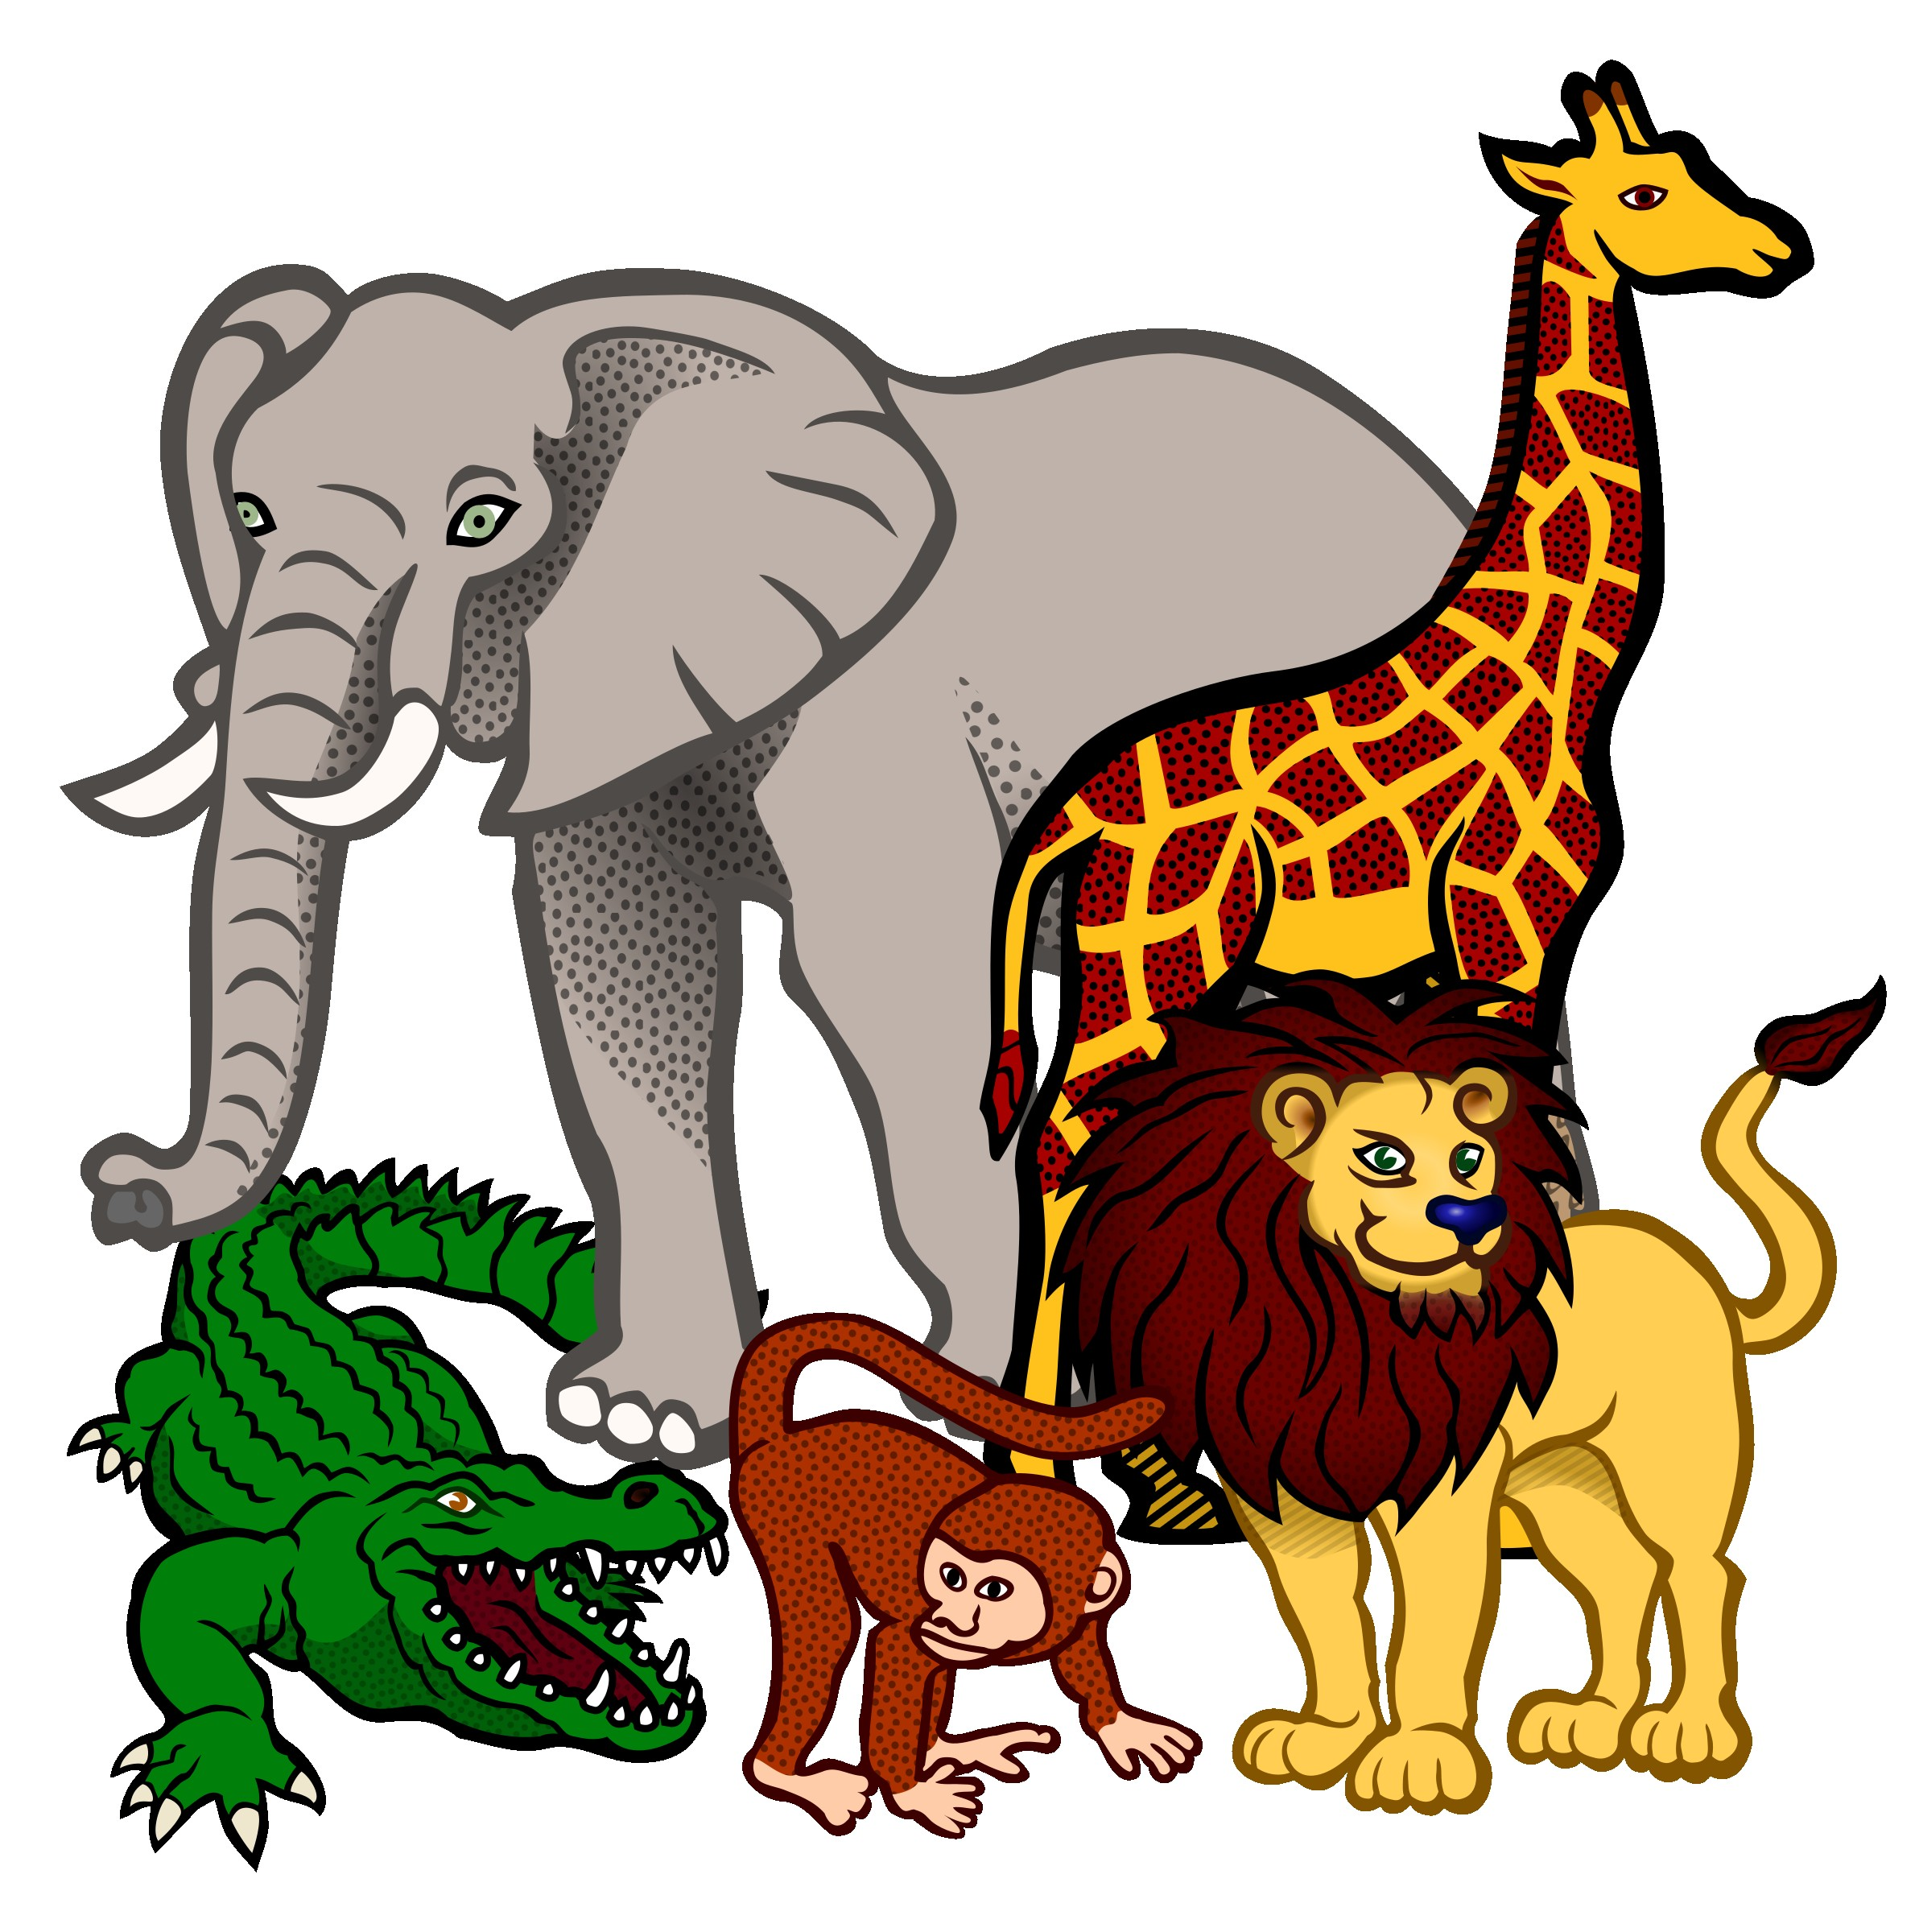 Helping animals clipart banner freeuse stock Within Helping Animals Clipart 1095799 | Clip Art banner freeuse stock